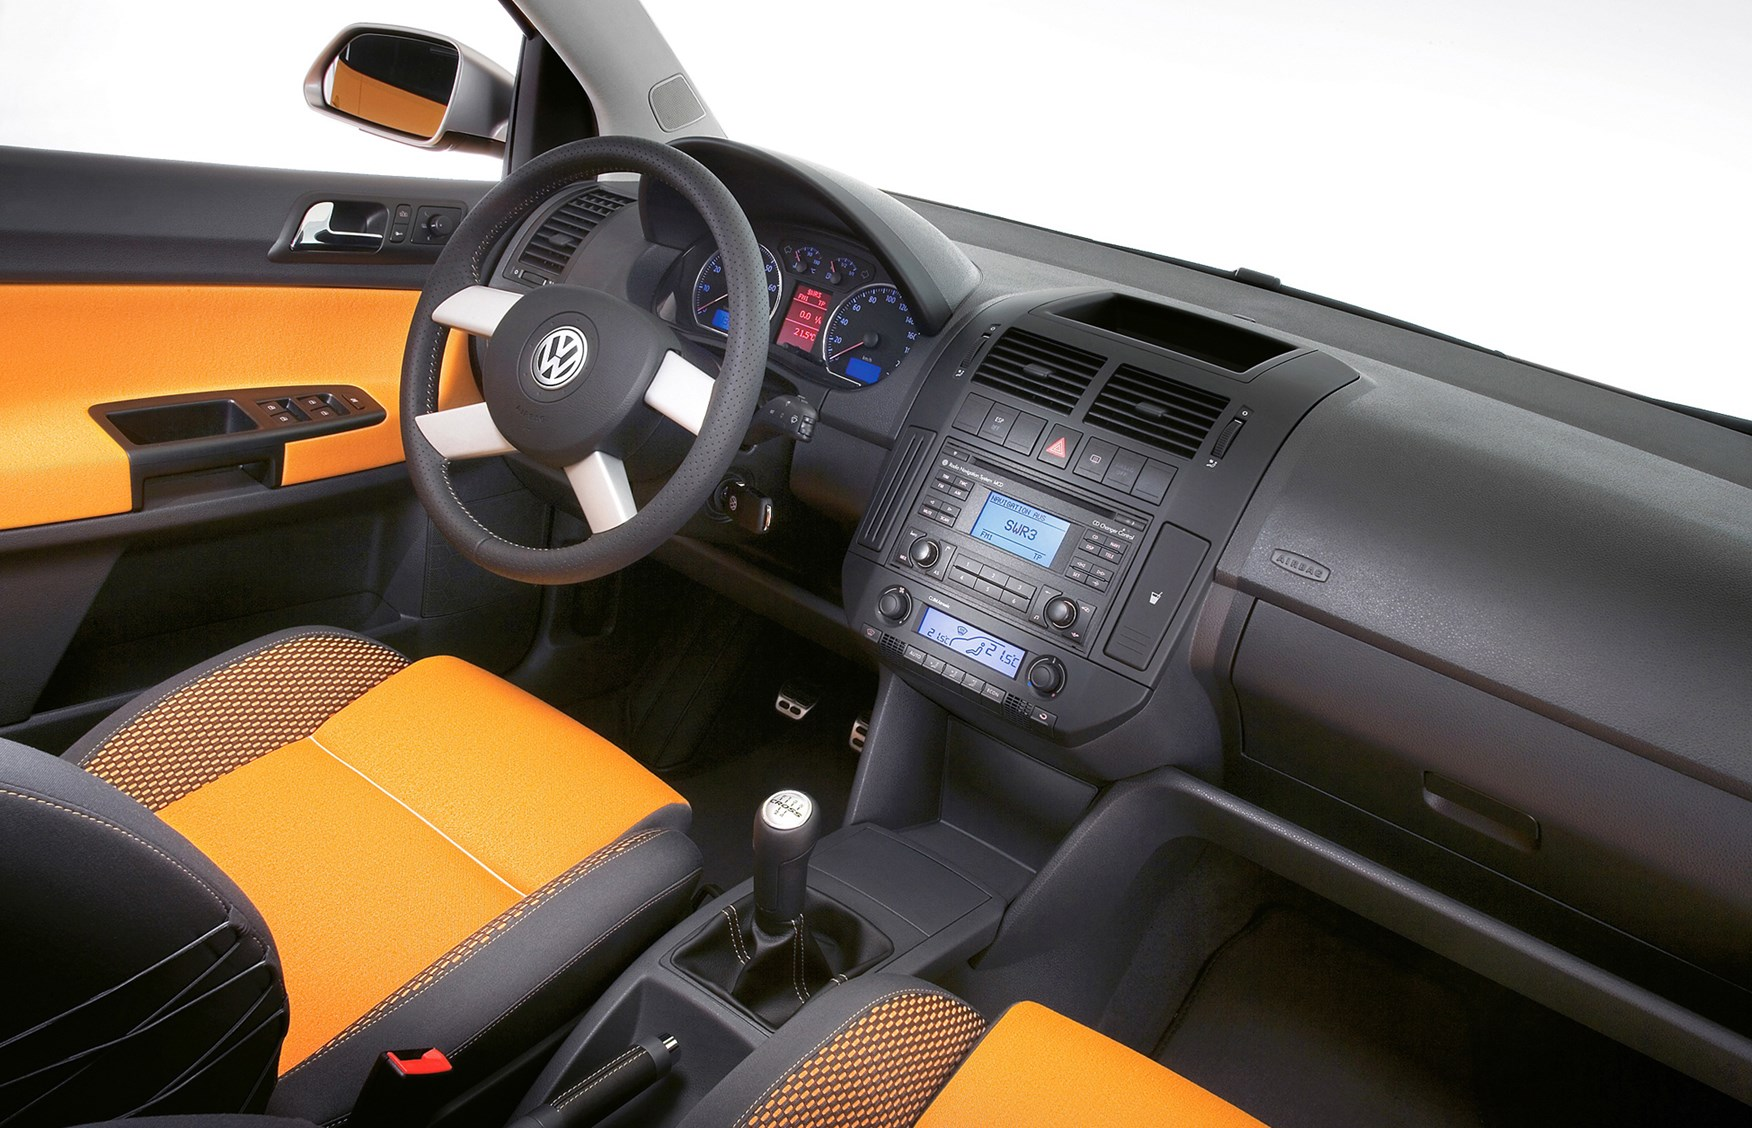 volkswagen polo dune review 2004 2008 parkers. Black Bedroom Furniture Sets. Home Design Ideas